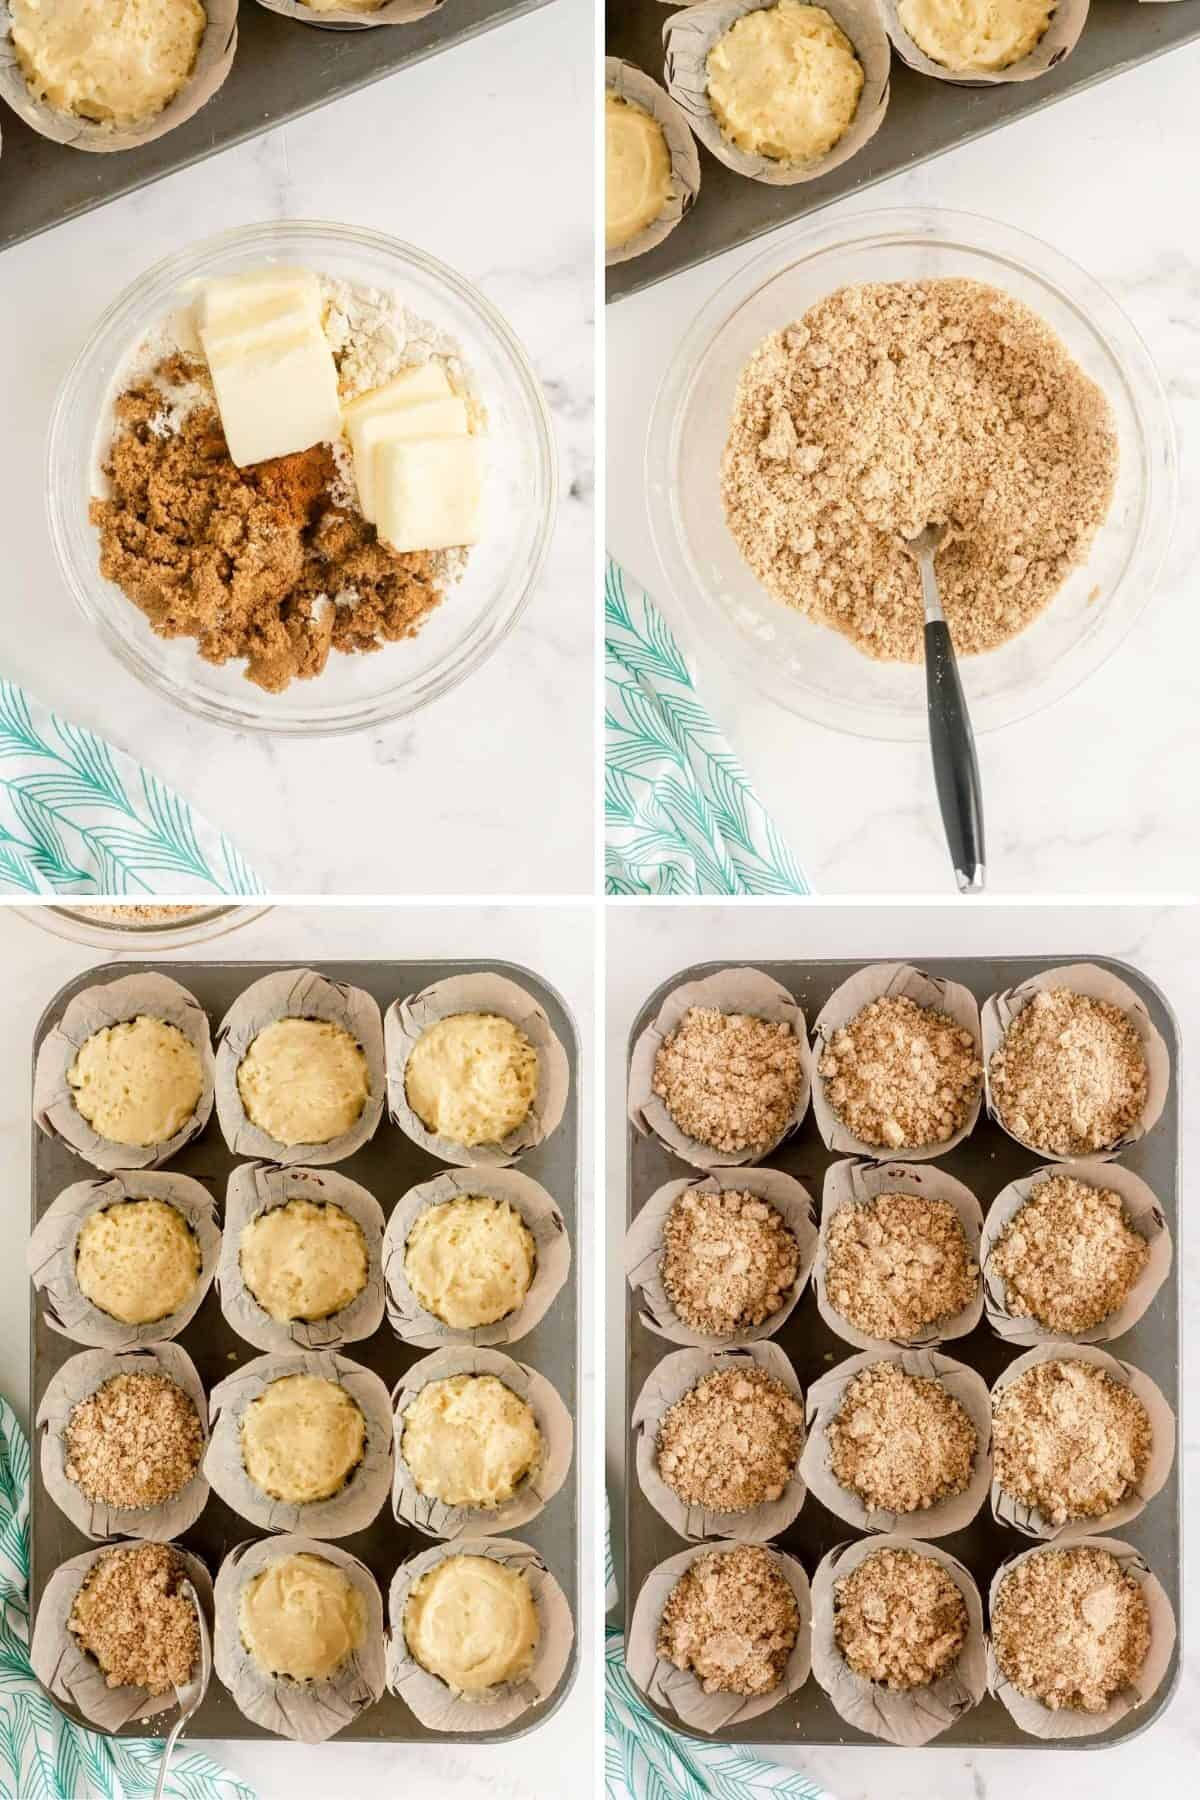 making streusel topping for muffins